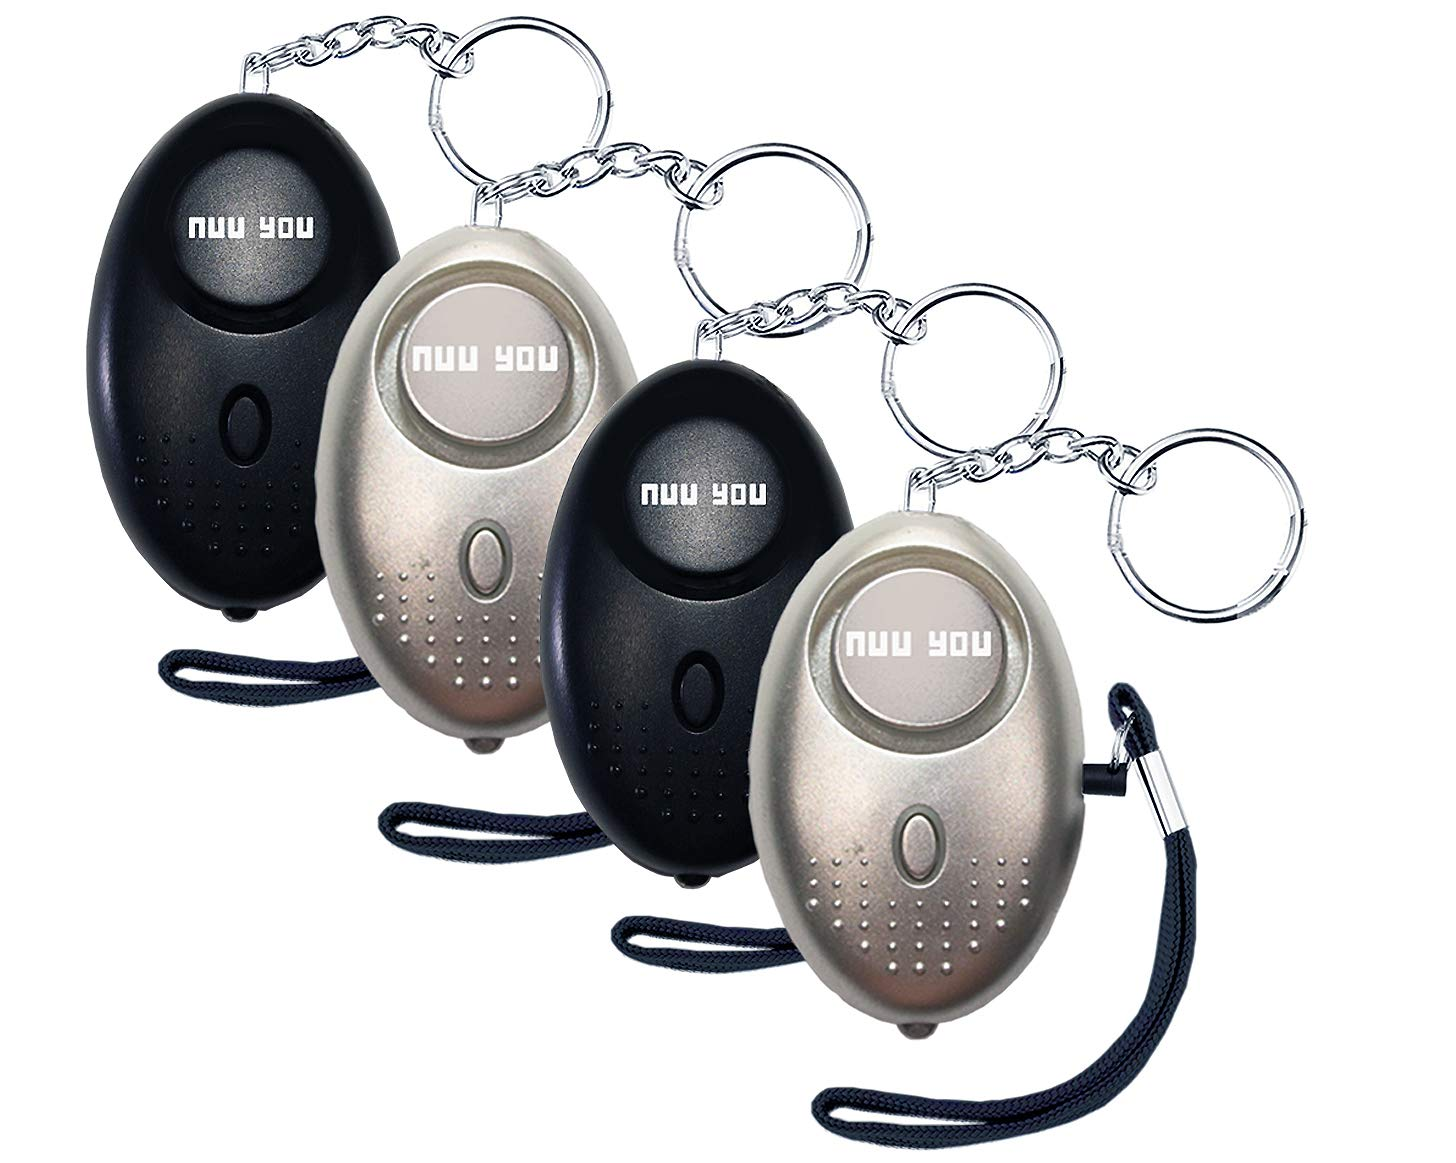 Nuu You Personal Alarms for Woman Siren 140 DB with LED Light (4 Pack) Small Safety Sound Alarm Keychain for Personal Alarm Women/Kids/Girls/Elderly ...